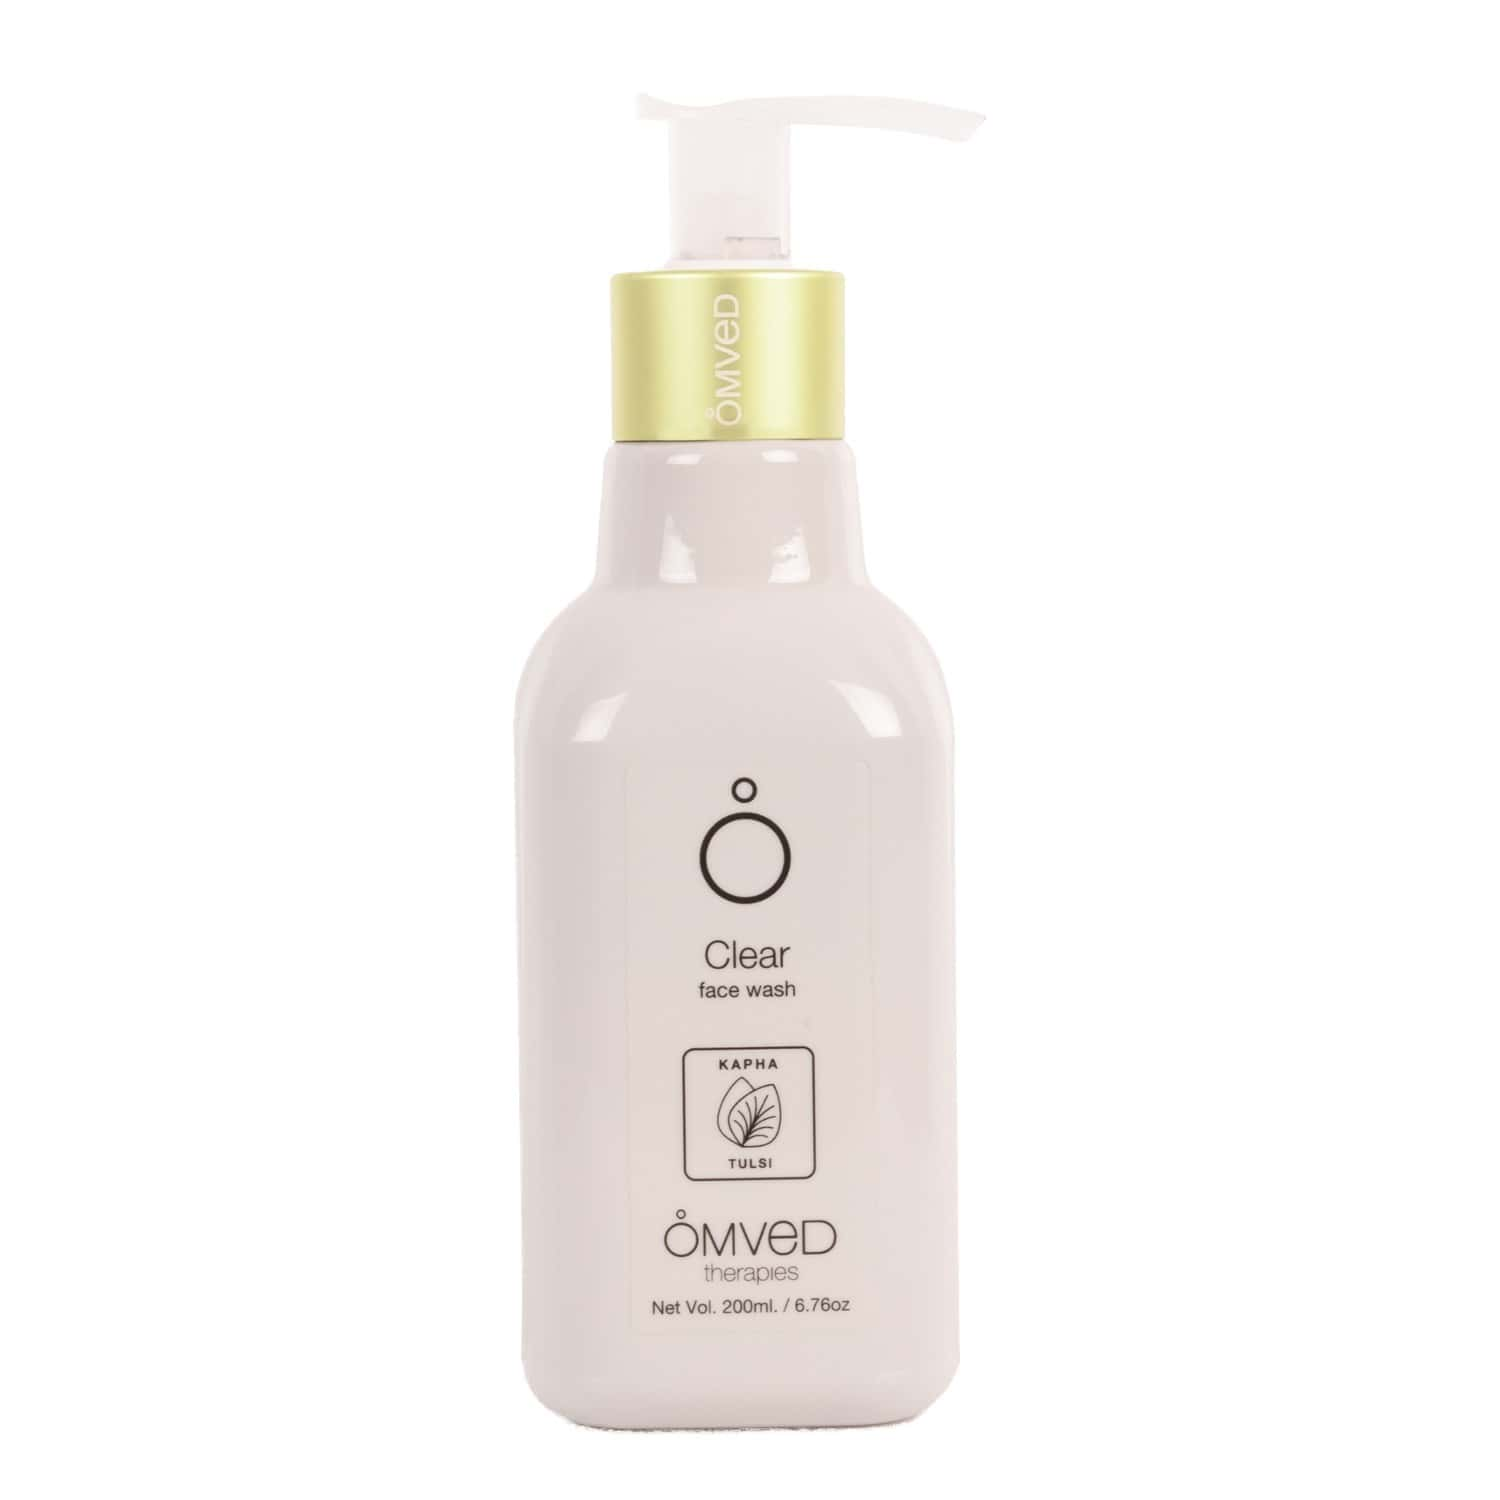 Omved Clear Face Wash For Deep Cleansing With Activated Charcoal, Tulsi, Wheat Protein, Vit B5 And Aloe Vera, Sls, Paraben Free-200ml